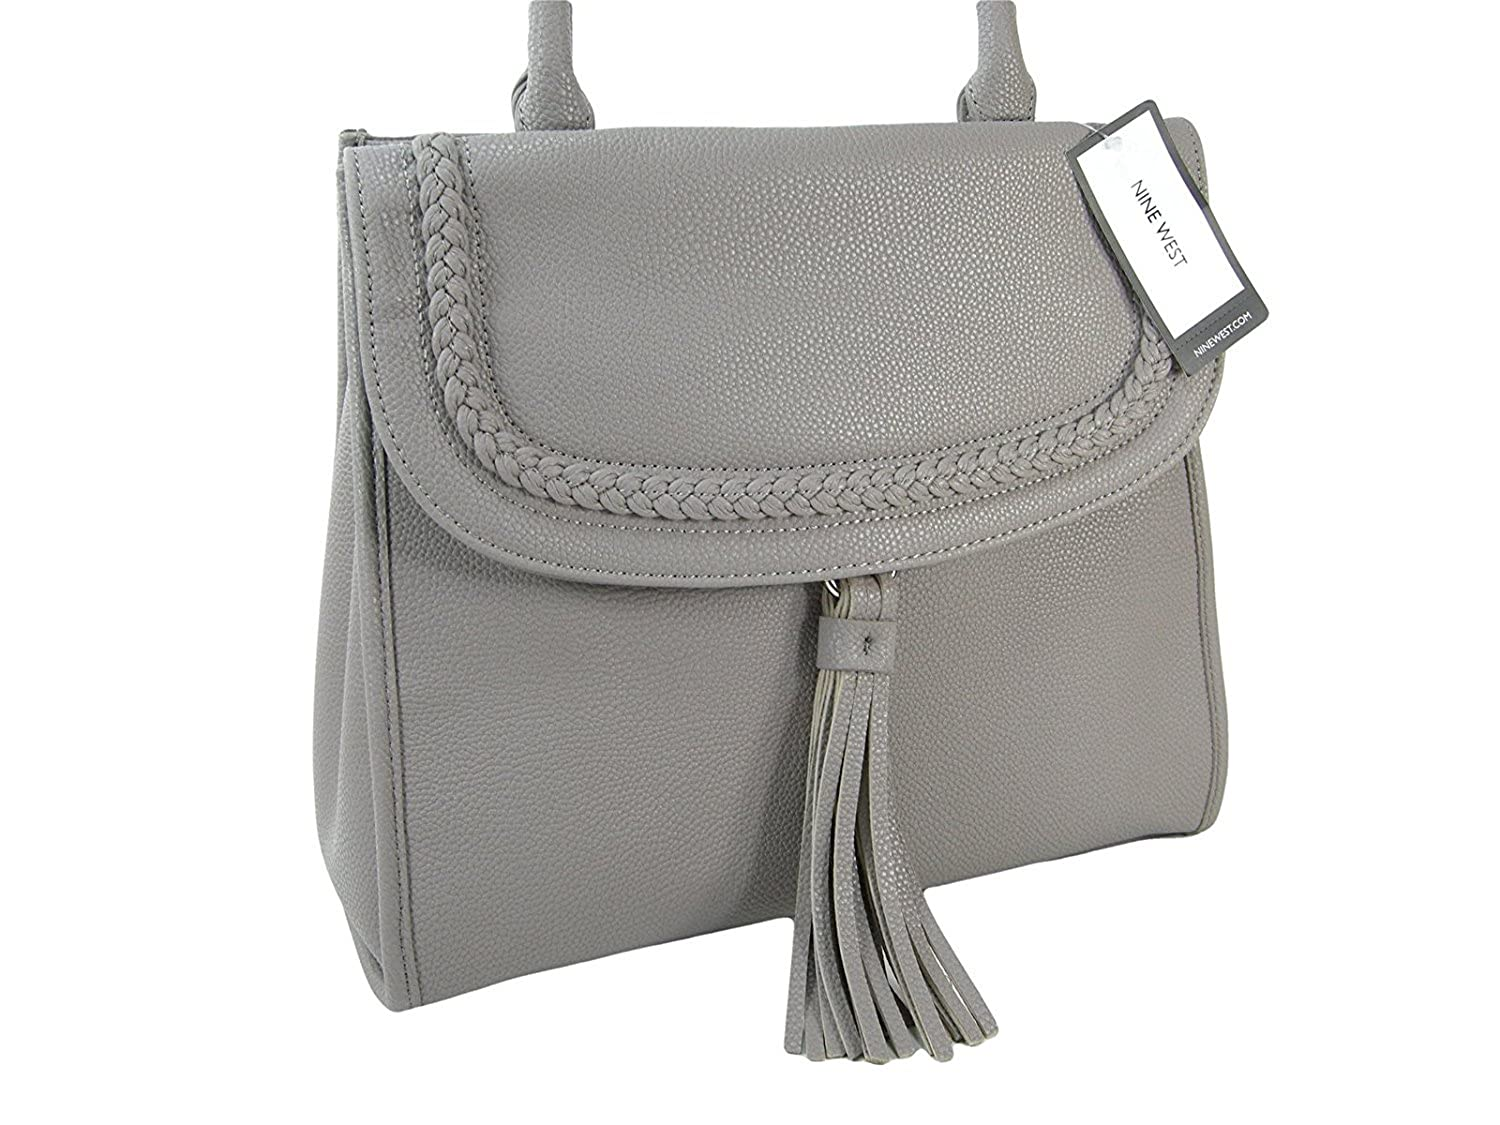 766871ddb79a New Nine West Logo Purse Crossbody Hand Bag   Matching Wristlet 2 Piece Set  Gray  Handbags  Amazon.com